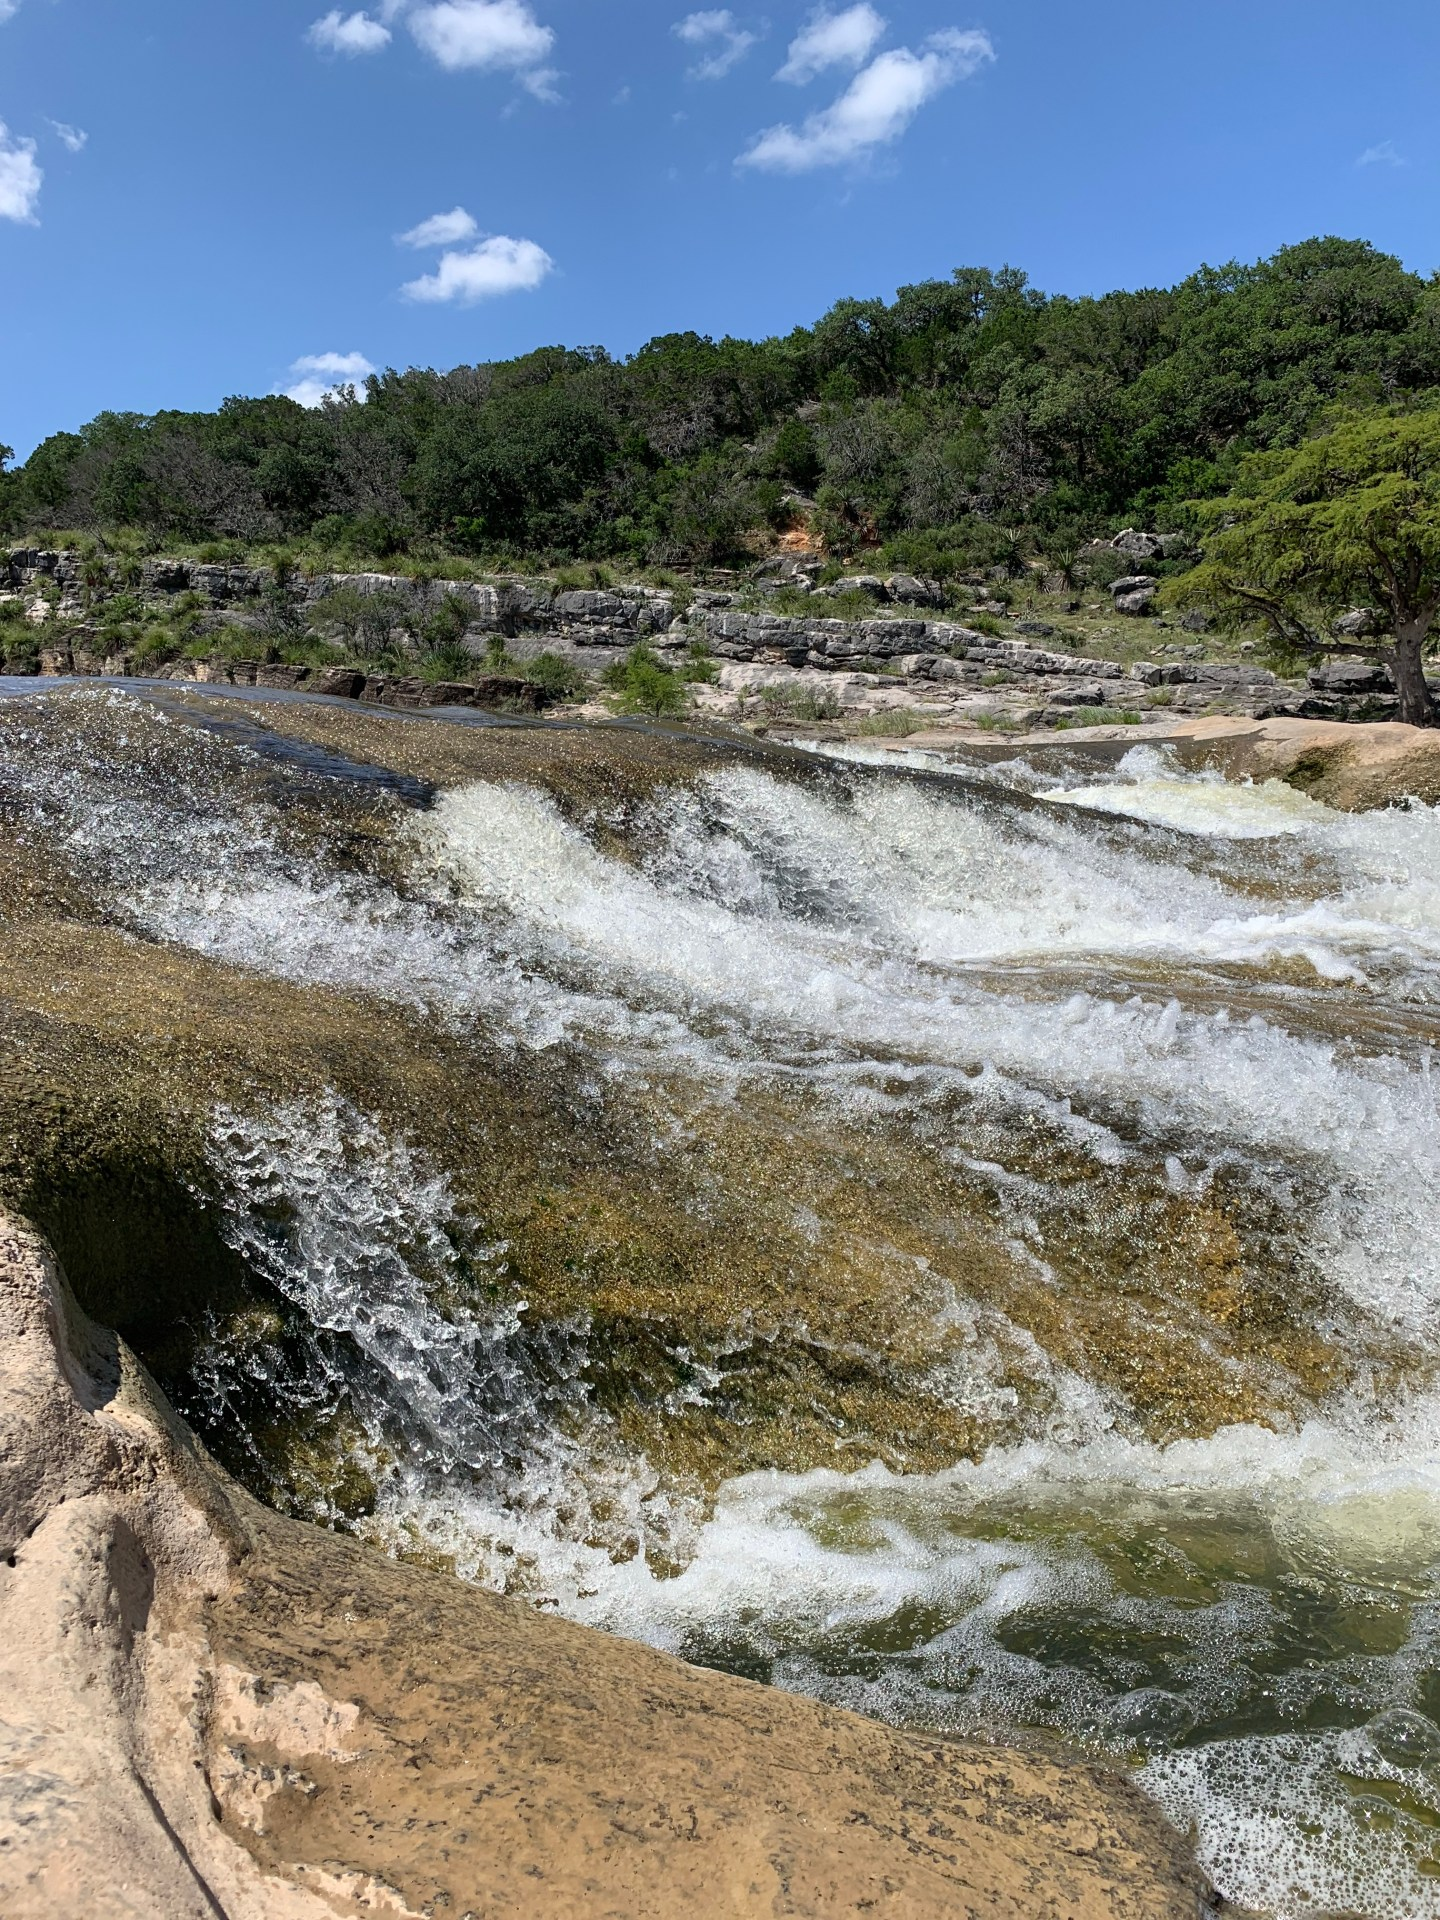 Pedernales Falls is one of the most popular waterfalls in Texas.